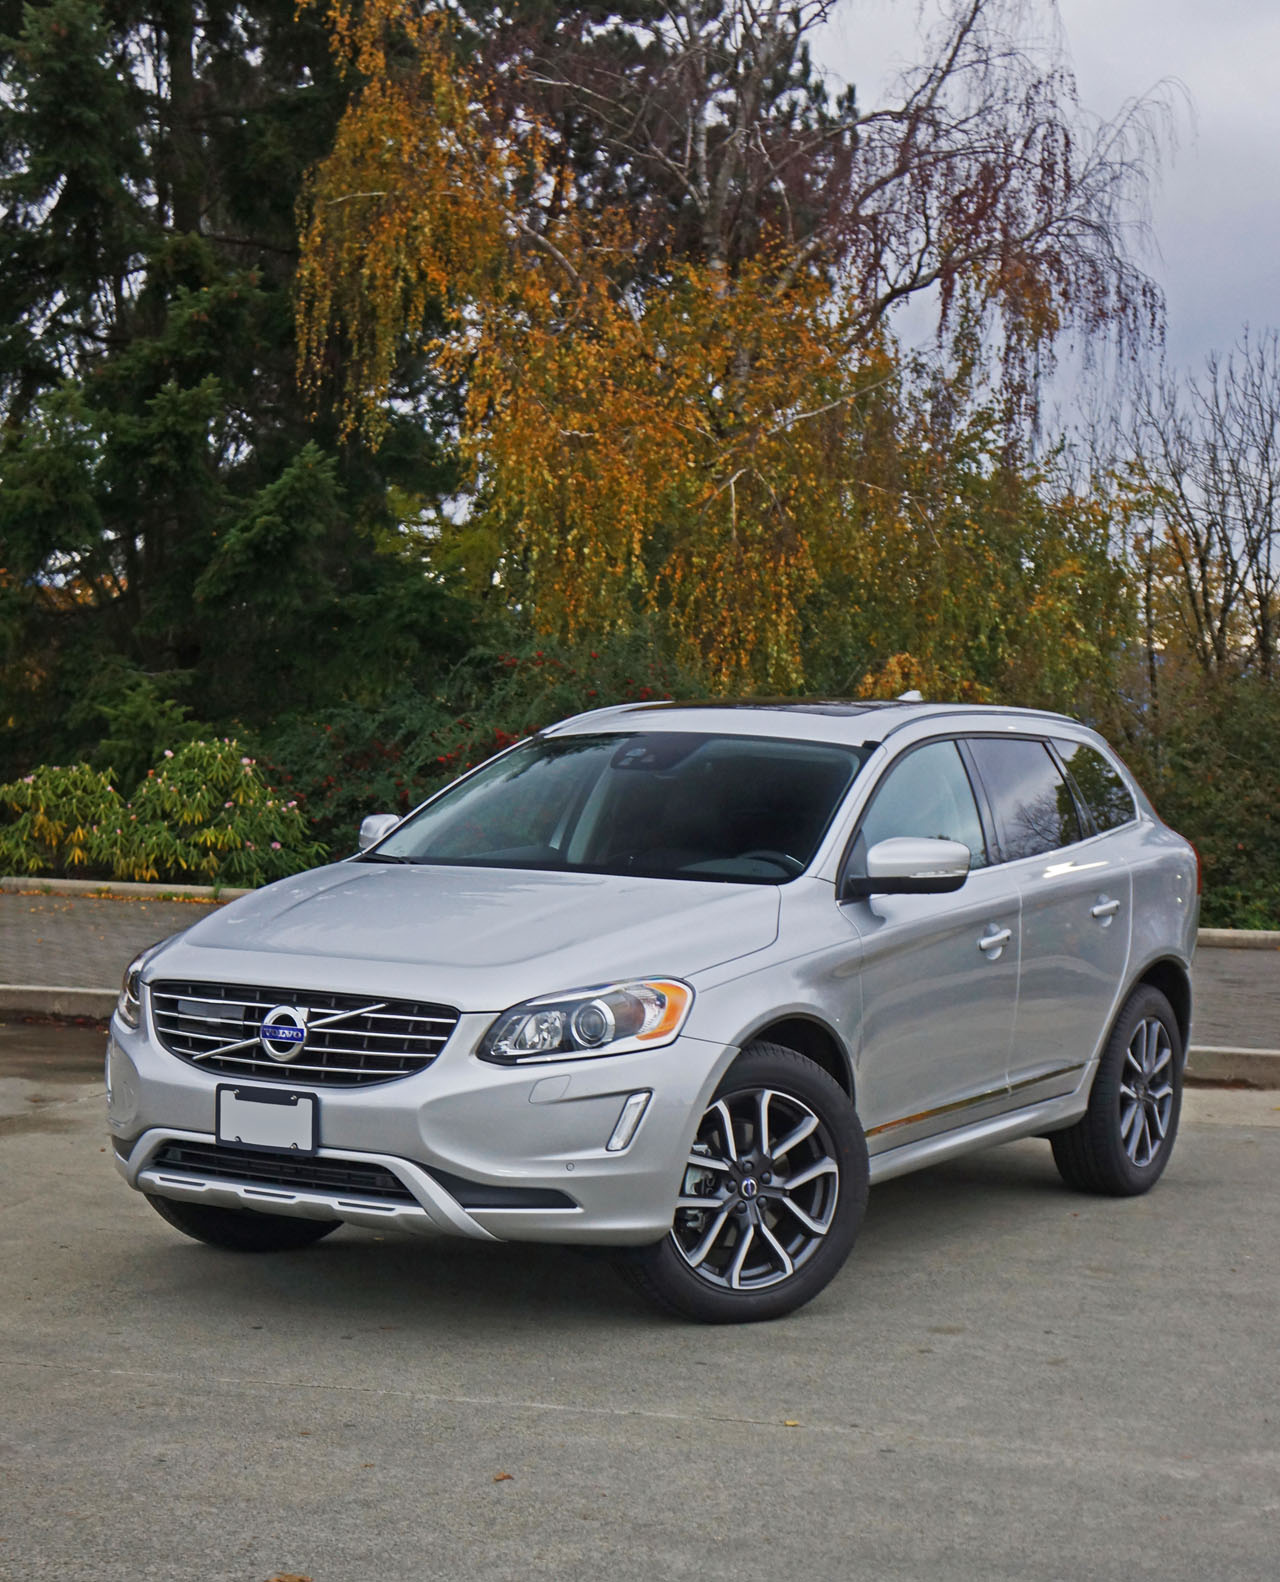 Volvo Sc 60: 2017 Volvo XC60 T5 Drive-E AWD Special Edition Road Test